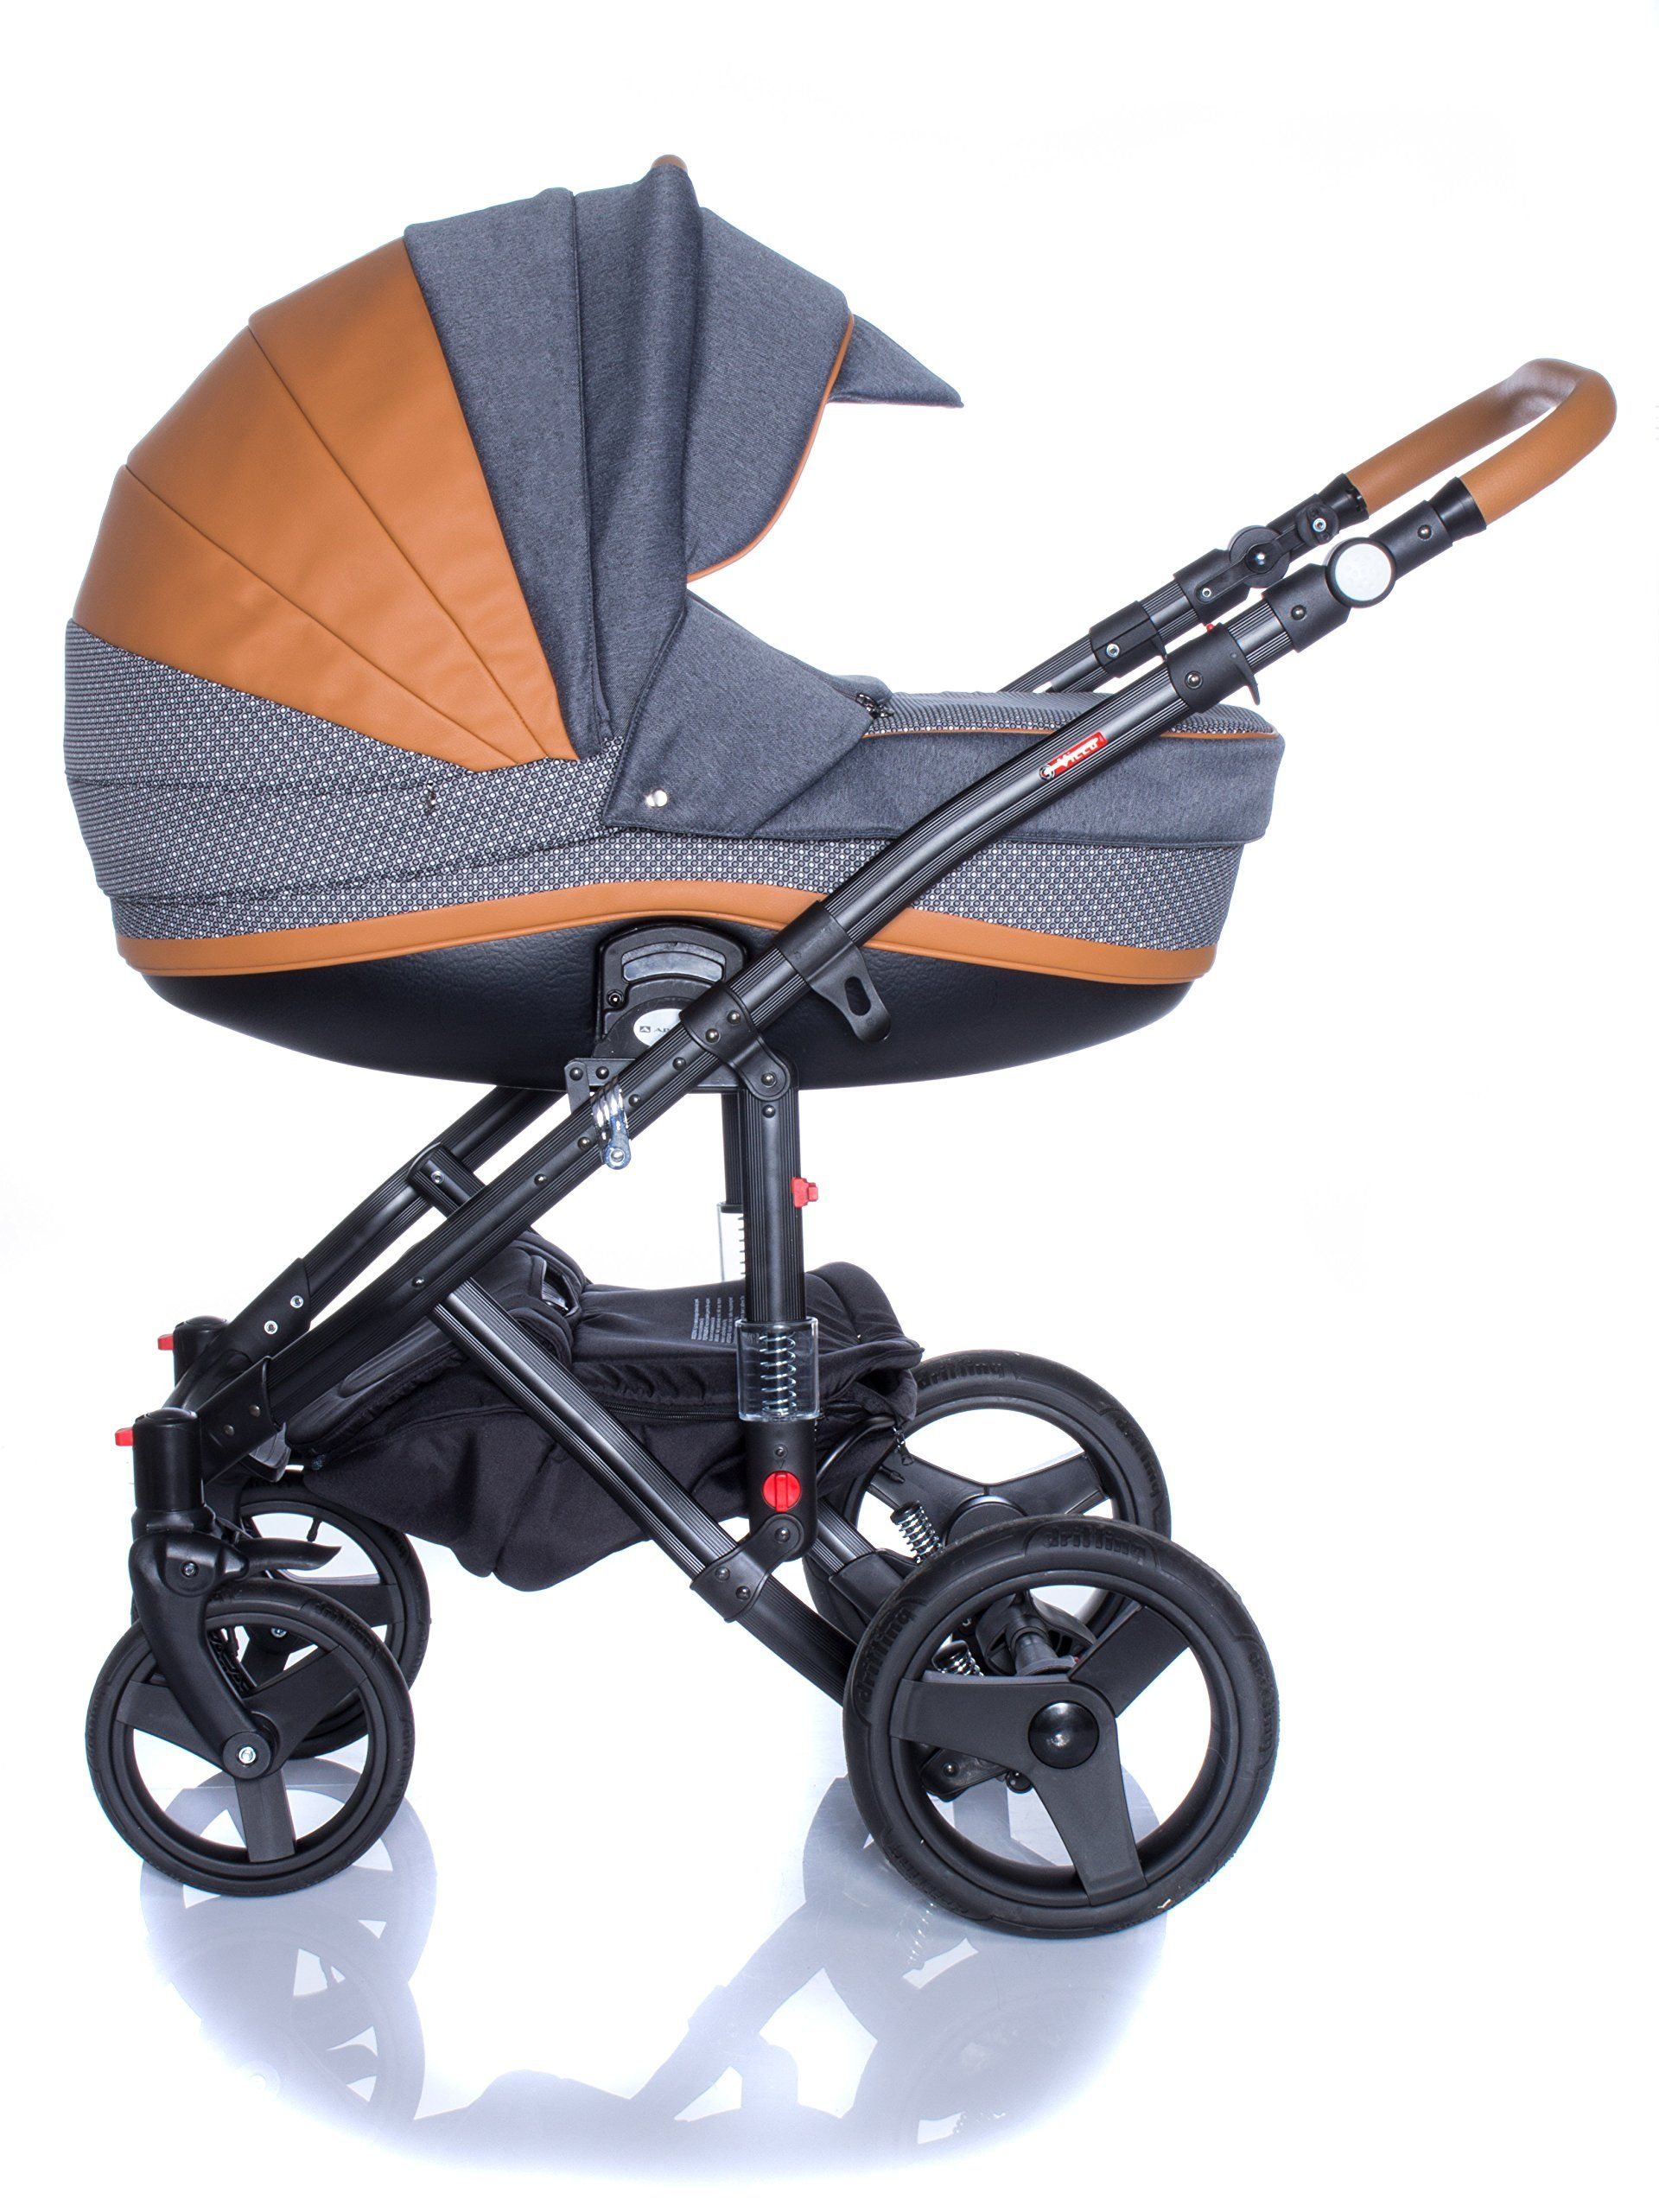 Buggy Joie Leicht Baby Pram Pushchair Stroller Buggy Travel System Set Adamex